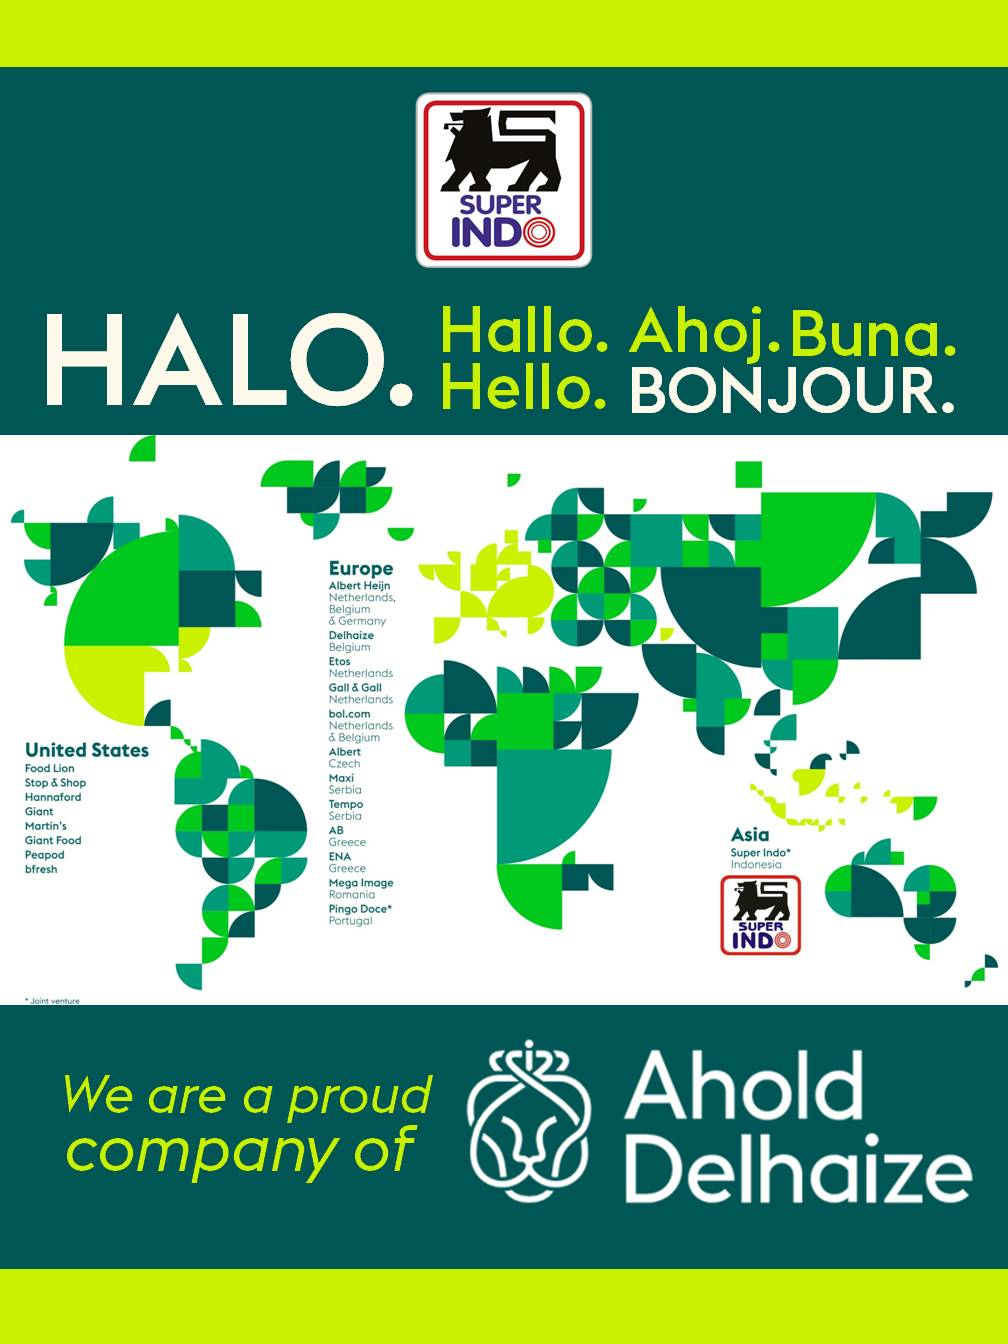 We Are a Proud Company of Ahold Delhaize